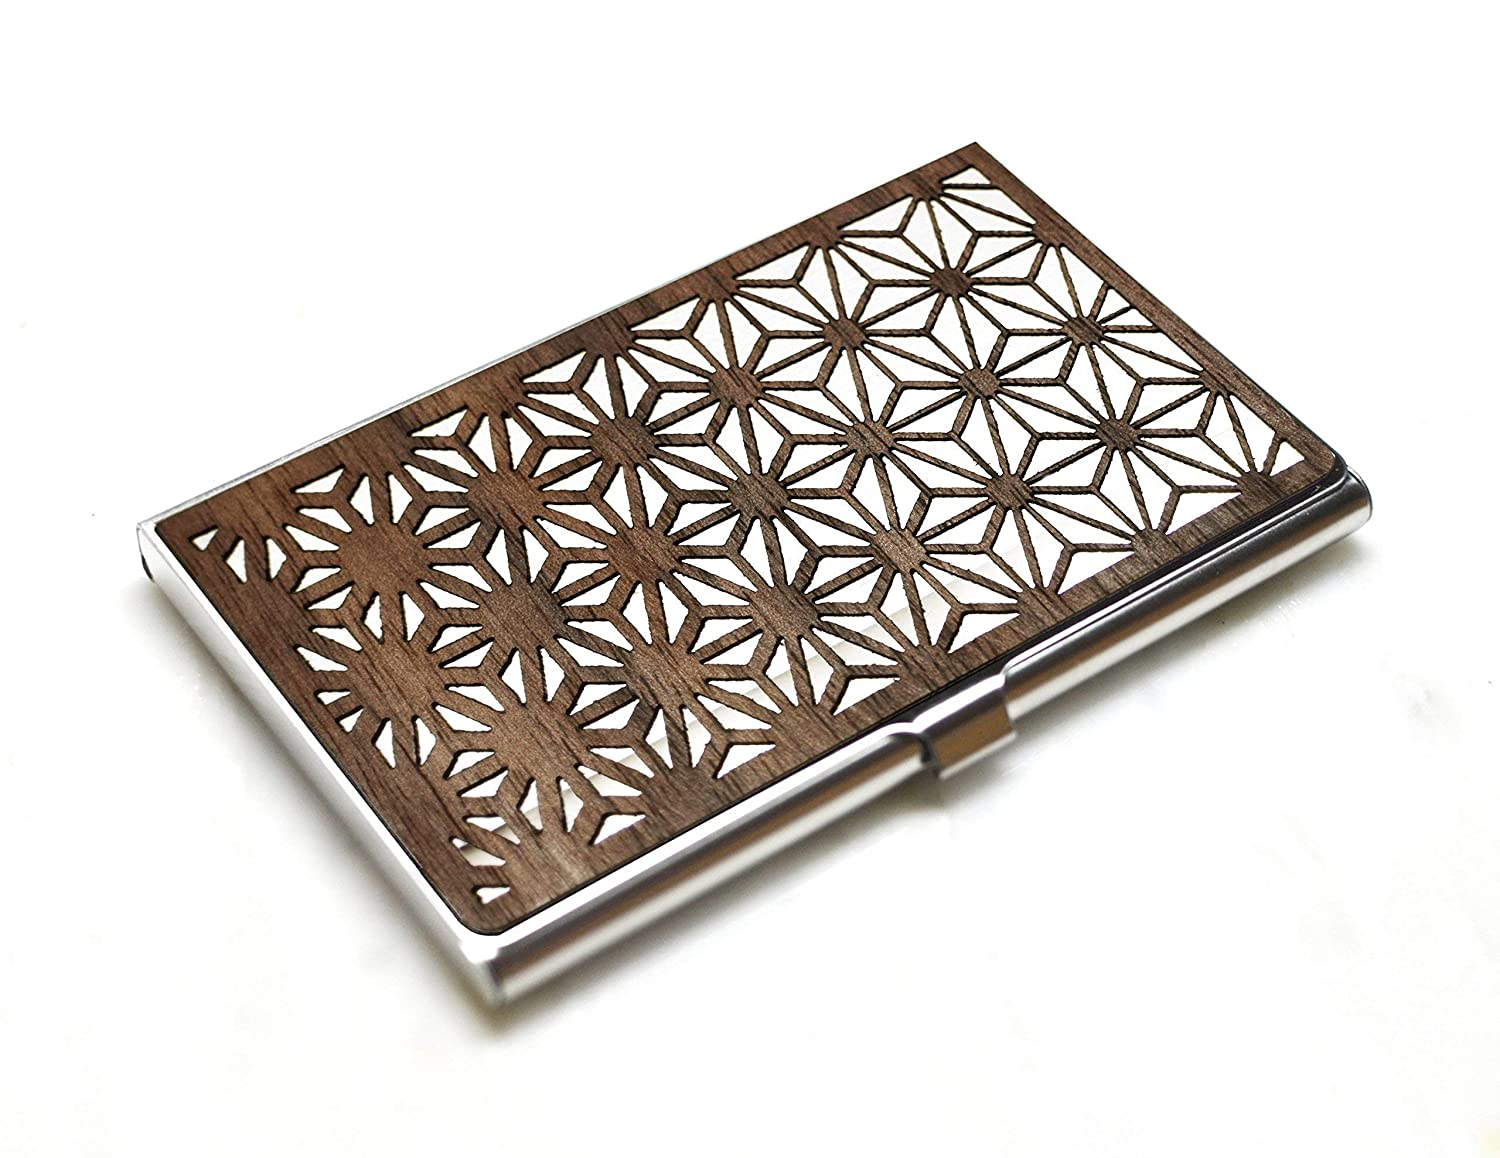 Wood Outlet sale feature business card holder Floral Geometric New Free Shipping - case